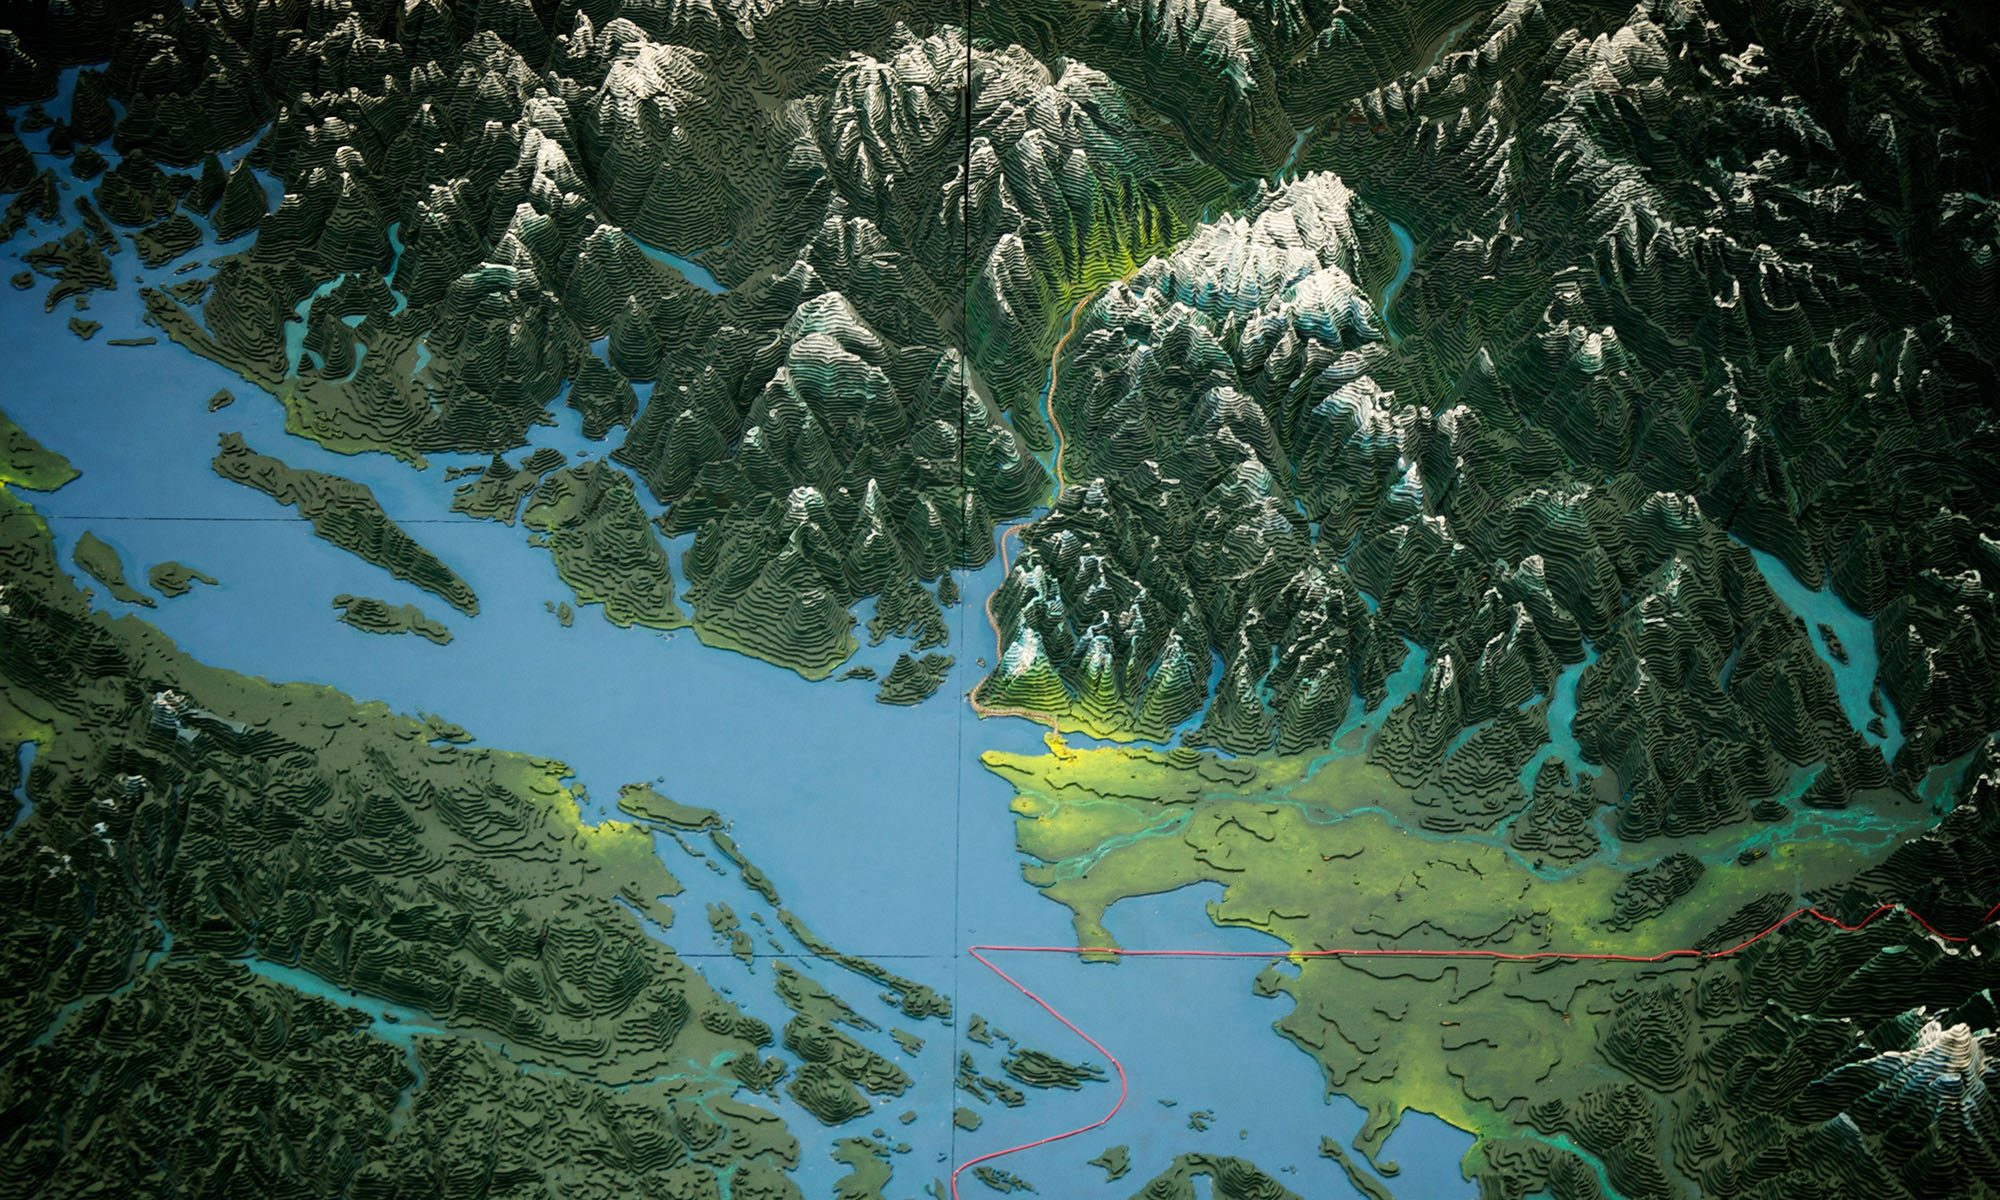 The Challenger Relief Map of British Columbia